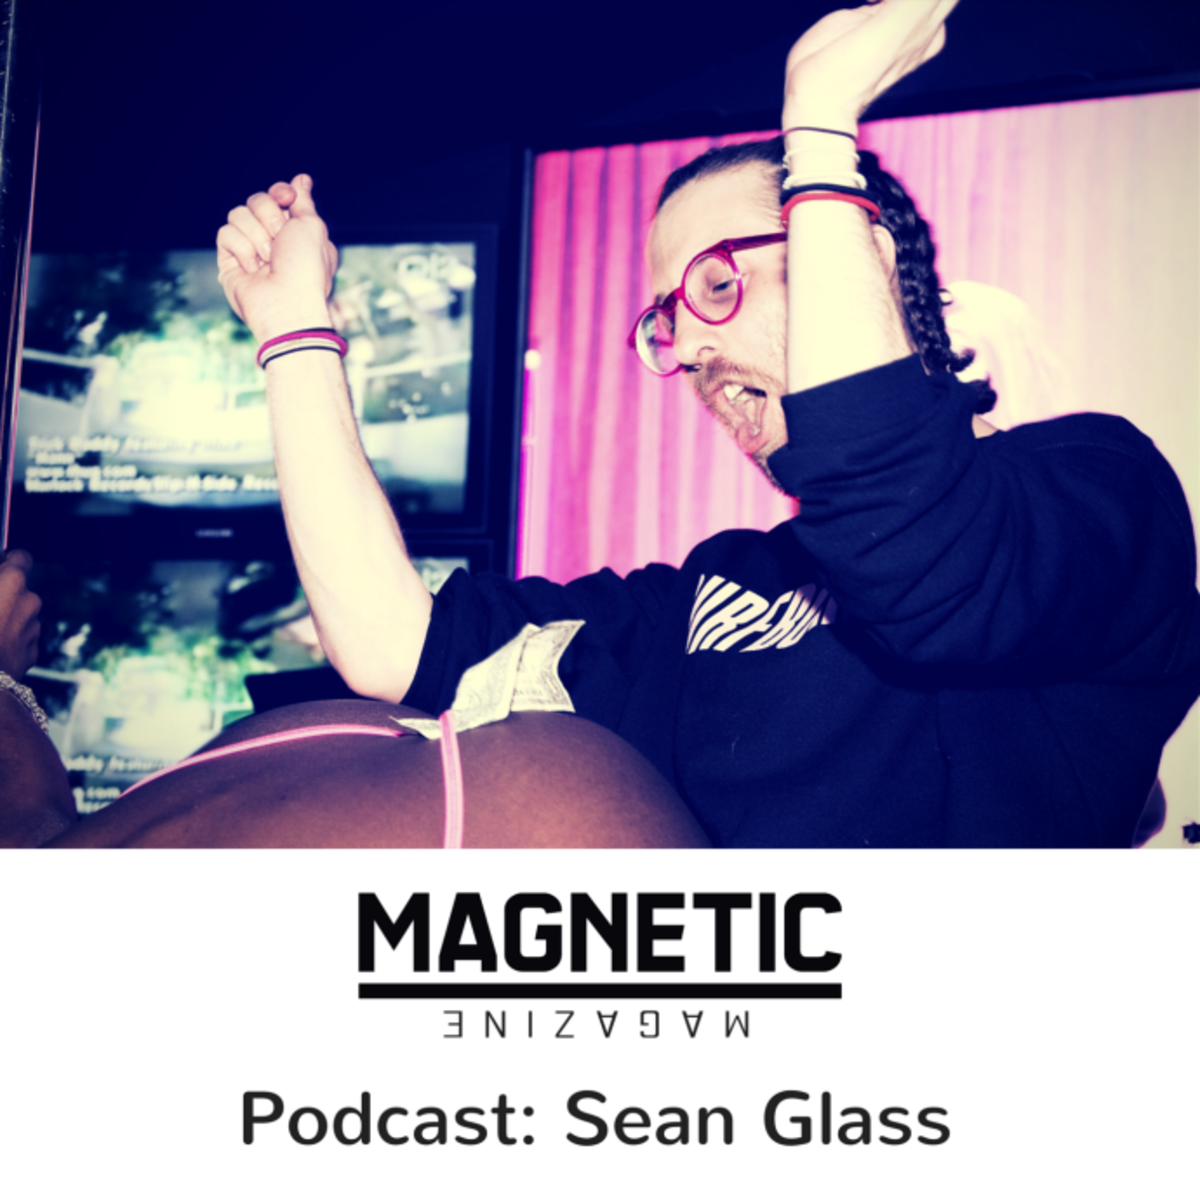 Magnetic Magazine Podcast: Sean Glass And The Politics Of Dancing